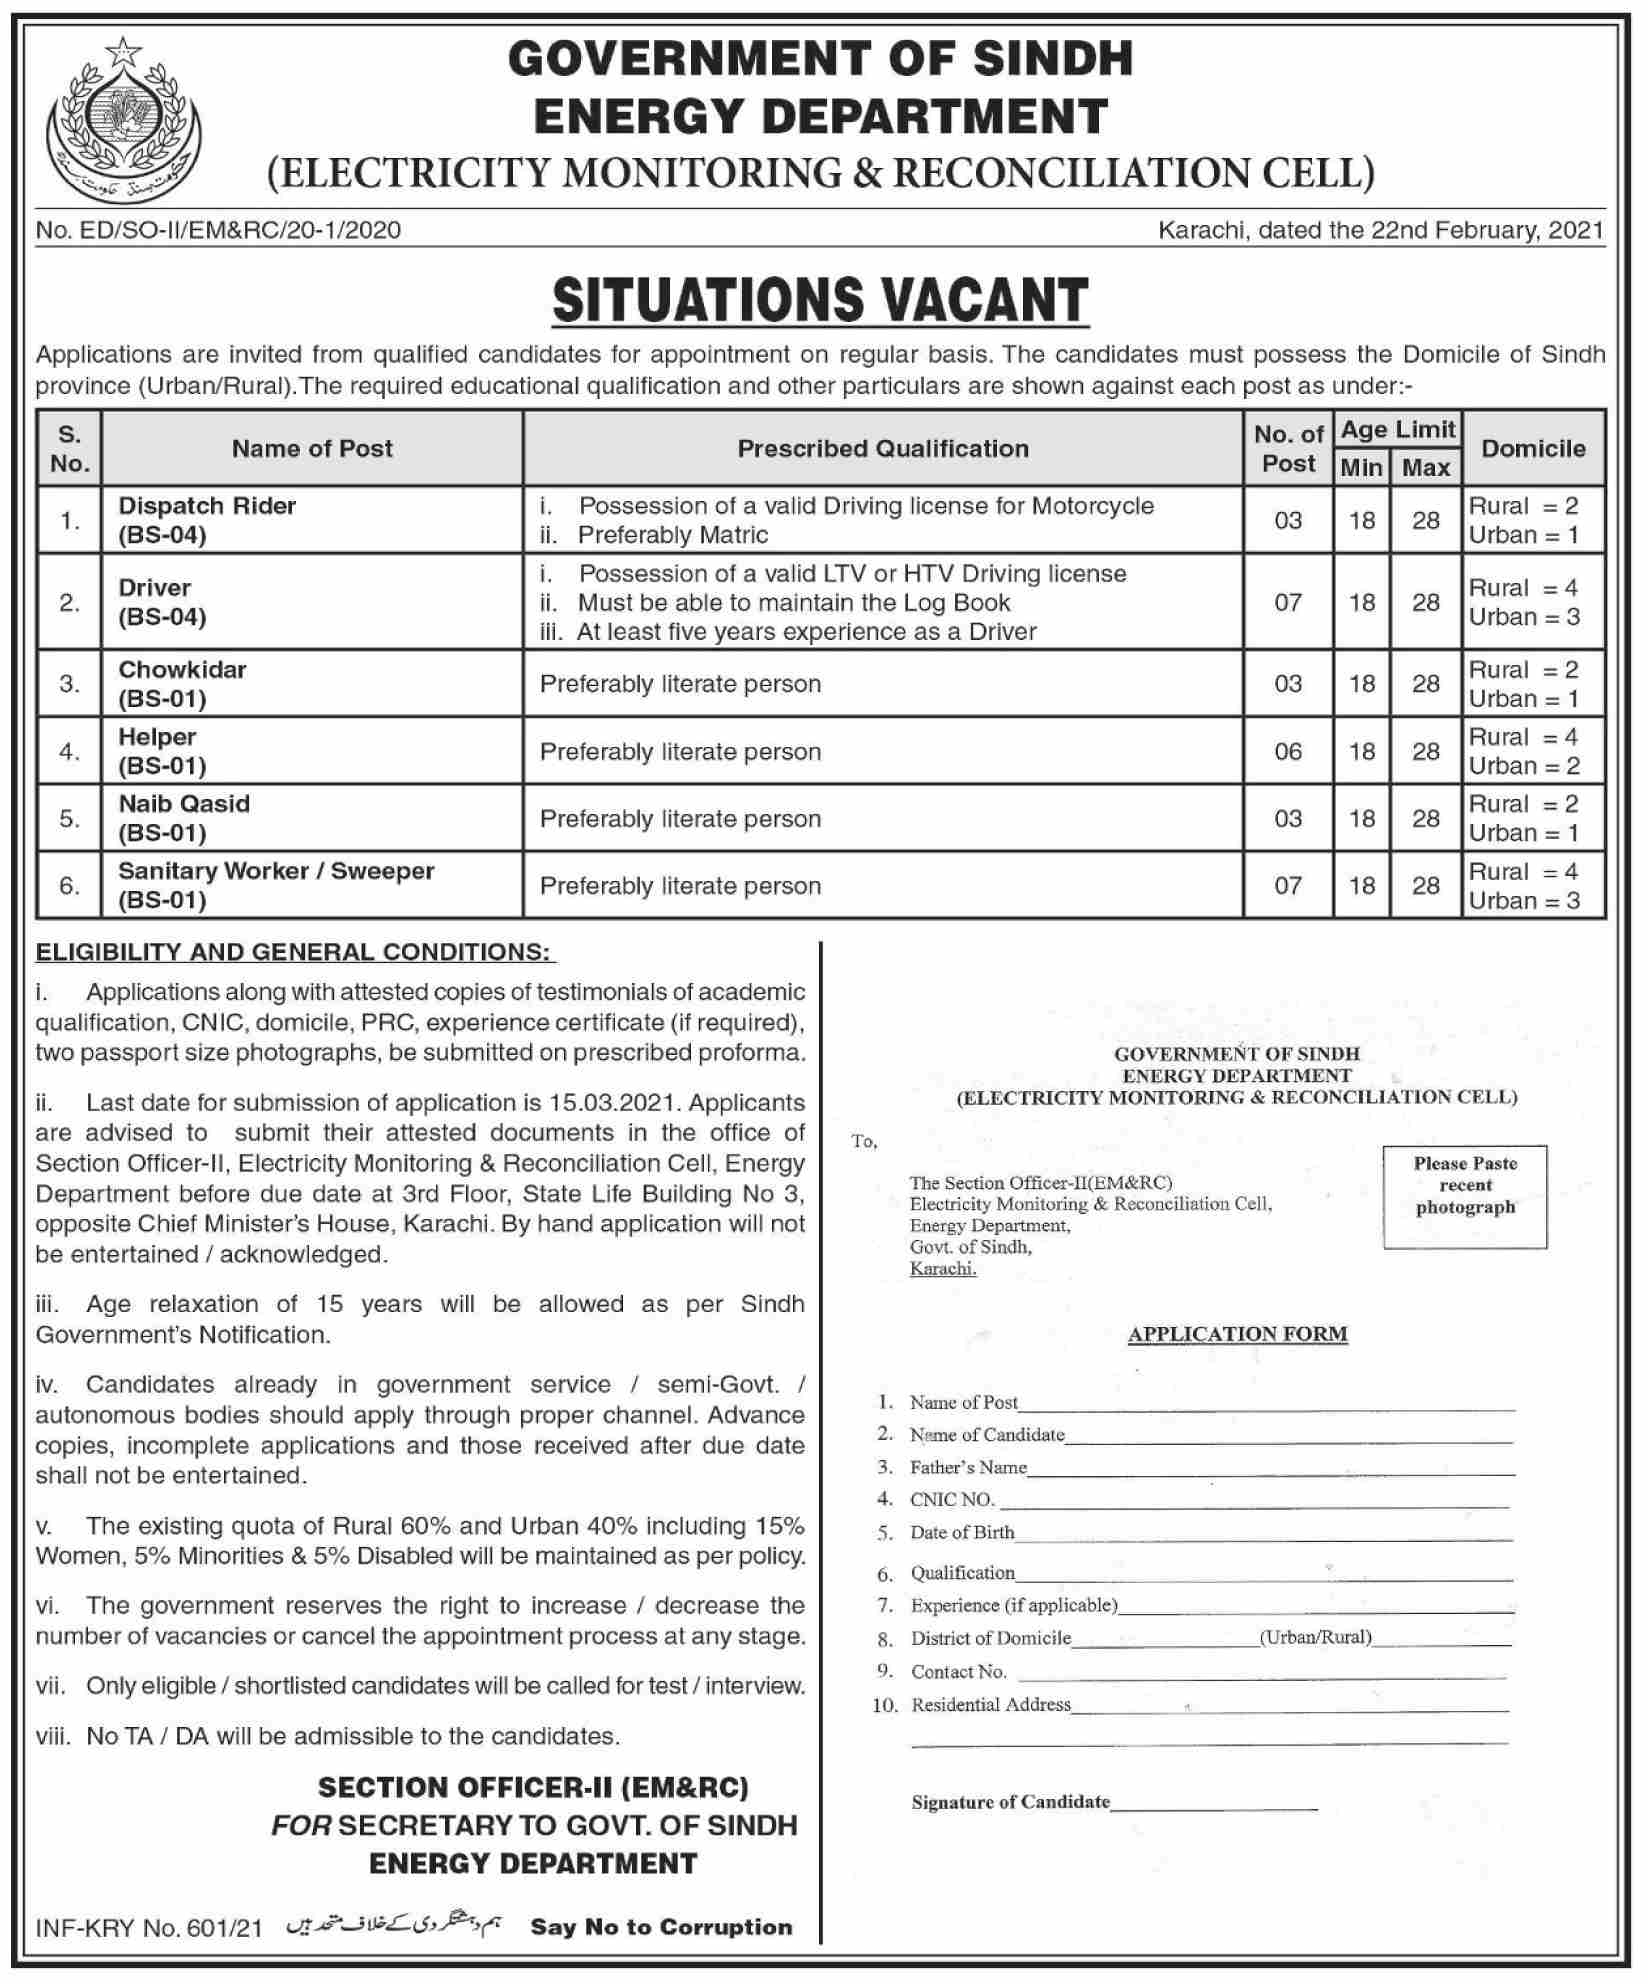 Download Energy Department Jobs 2021 Application Form - Electricity Monitoring & Reconciliation Cell Jobs 2021 in Pakistan